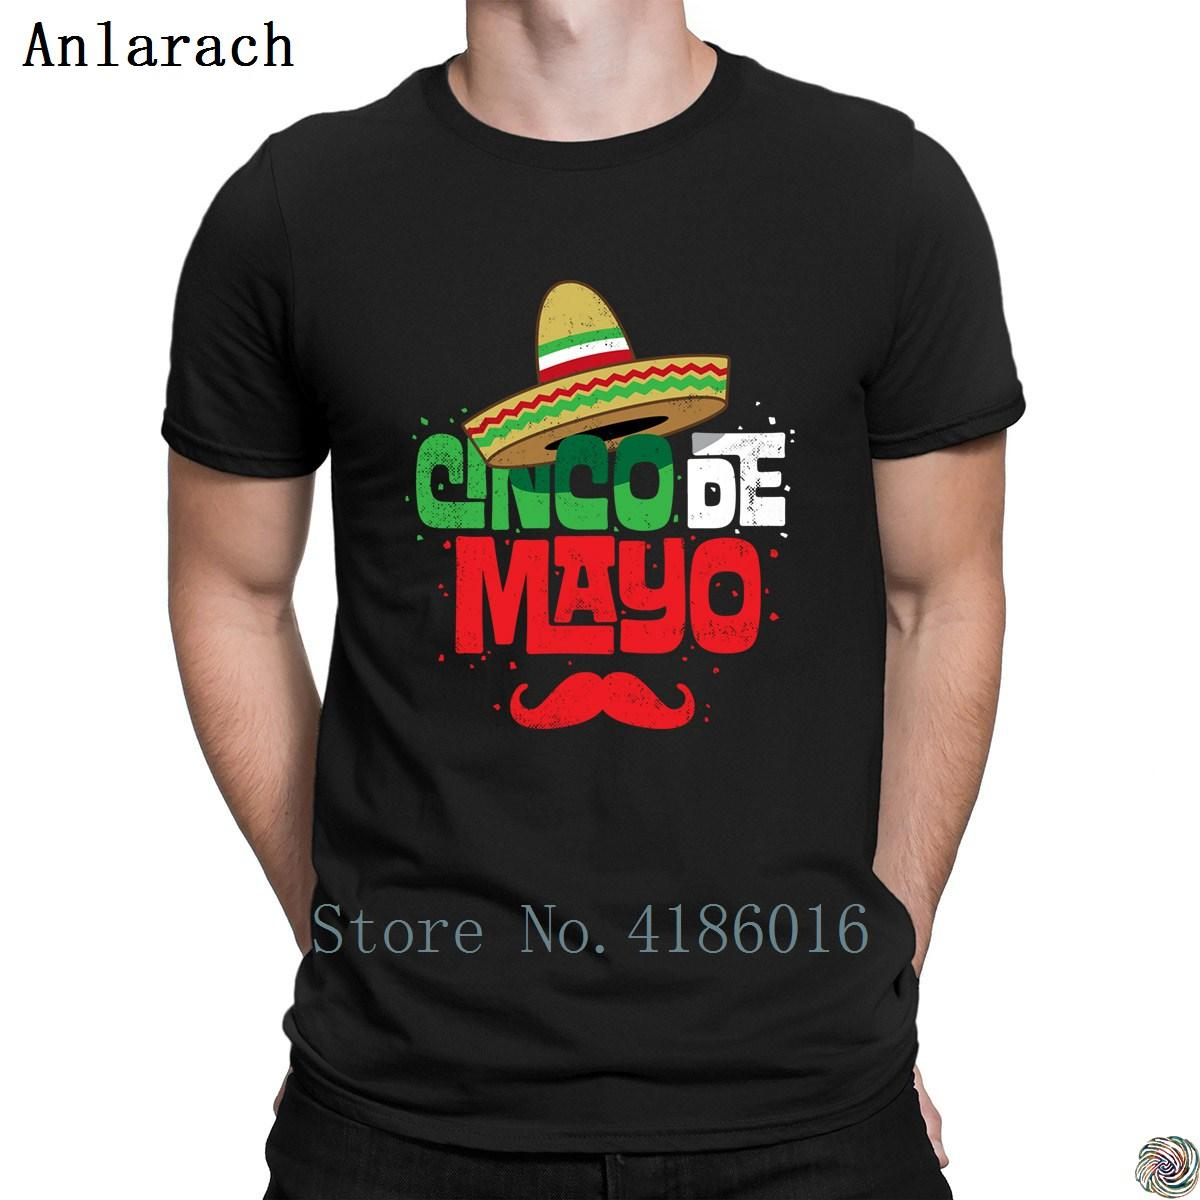 Cinco De Mayo Mexican Sombrero Fiesta T Shirt Fashion Tee Tops Fitted  Pictures T Shirt For Men Euro Size S 3xl Custom Unisex Personalised T Shirt  Mens Tee ... 05de92a0a97